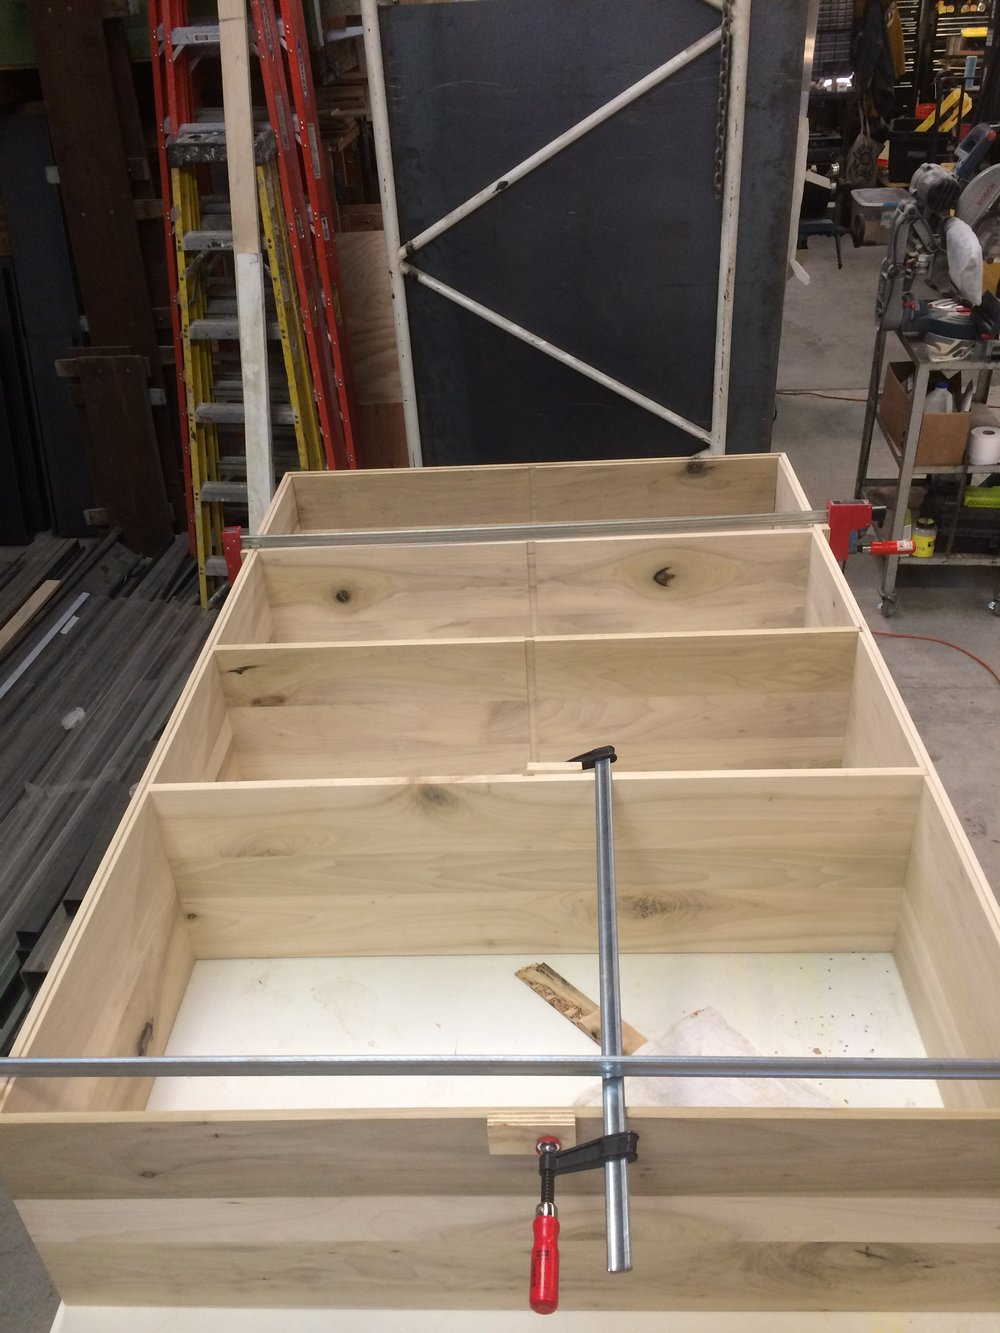 Dry fitting shelves